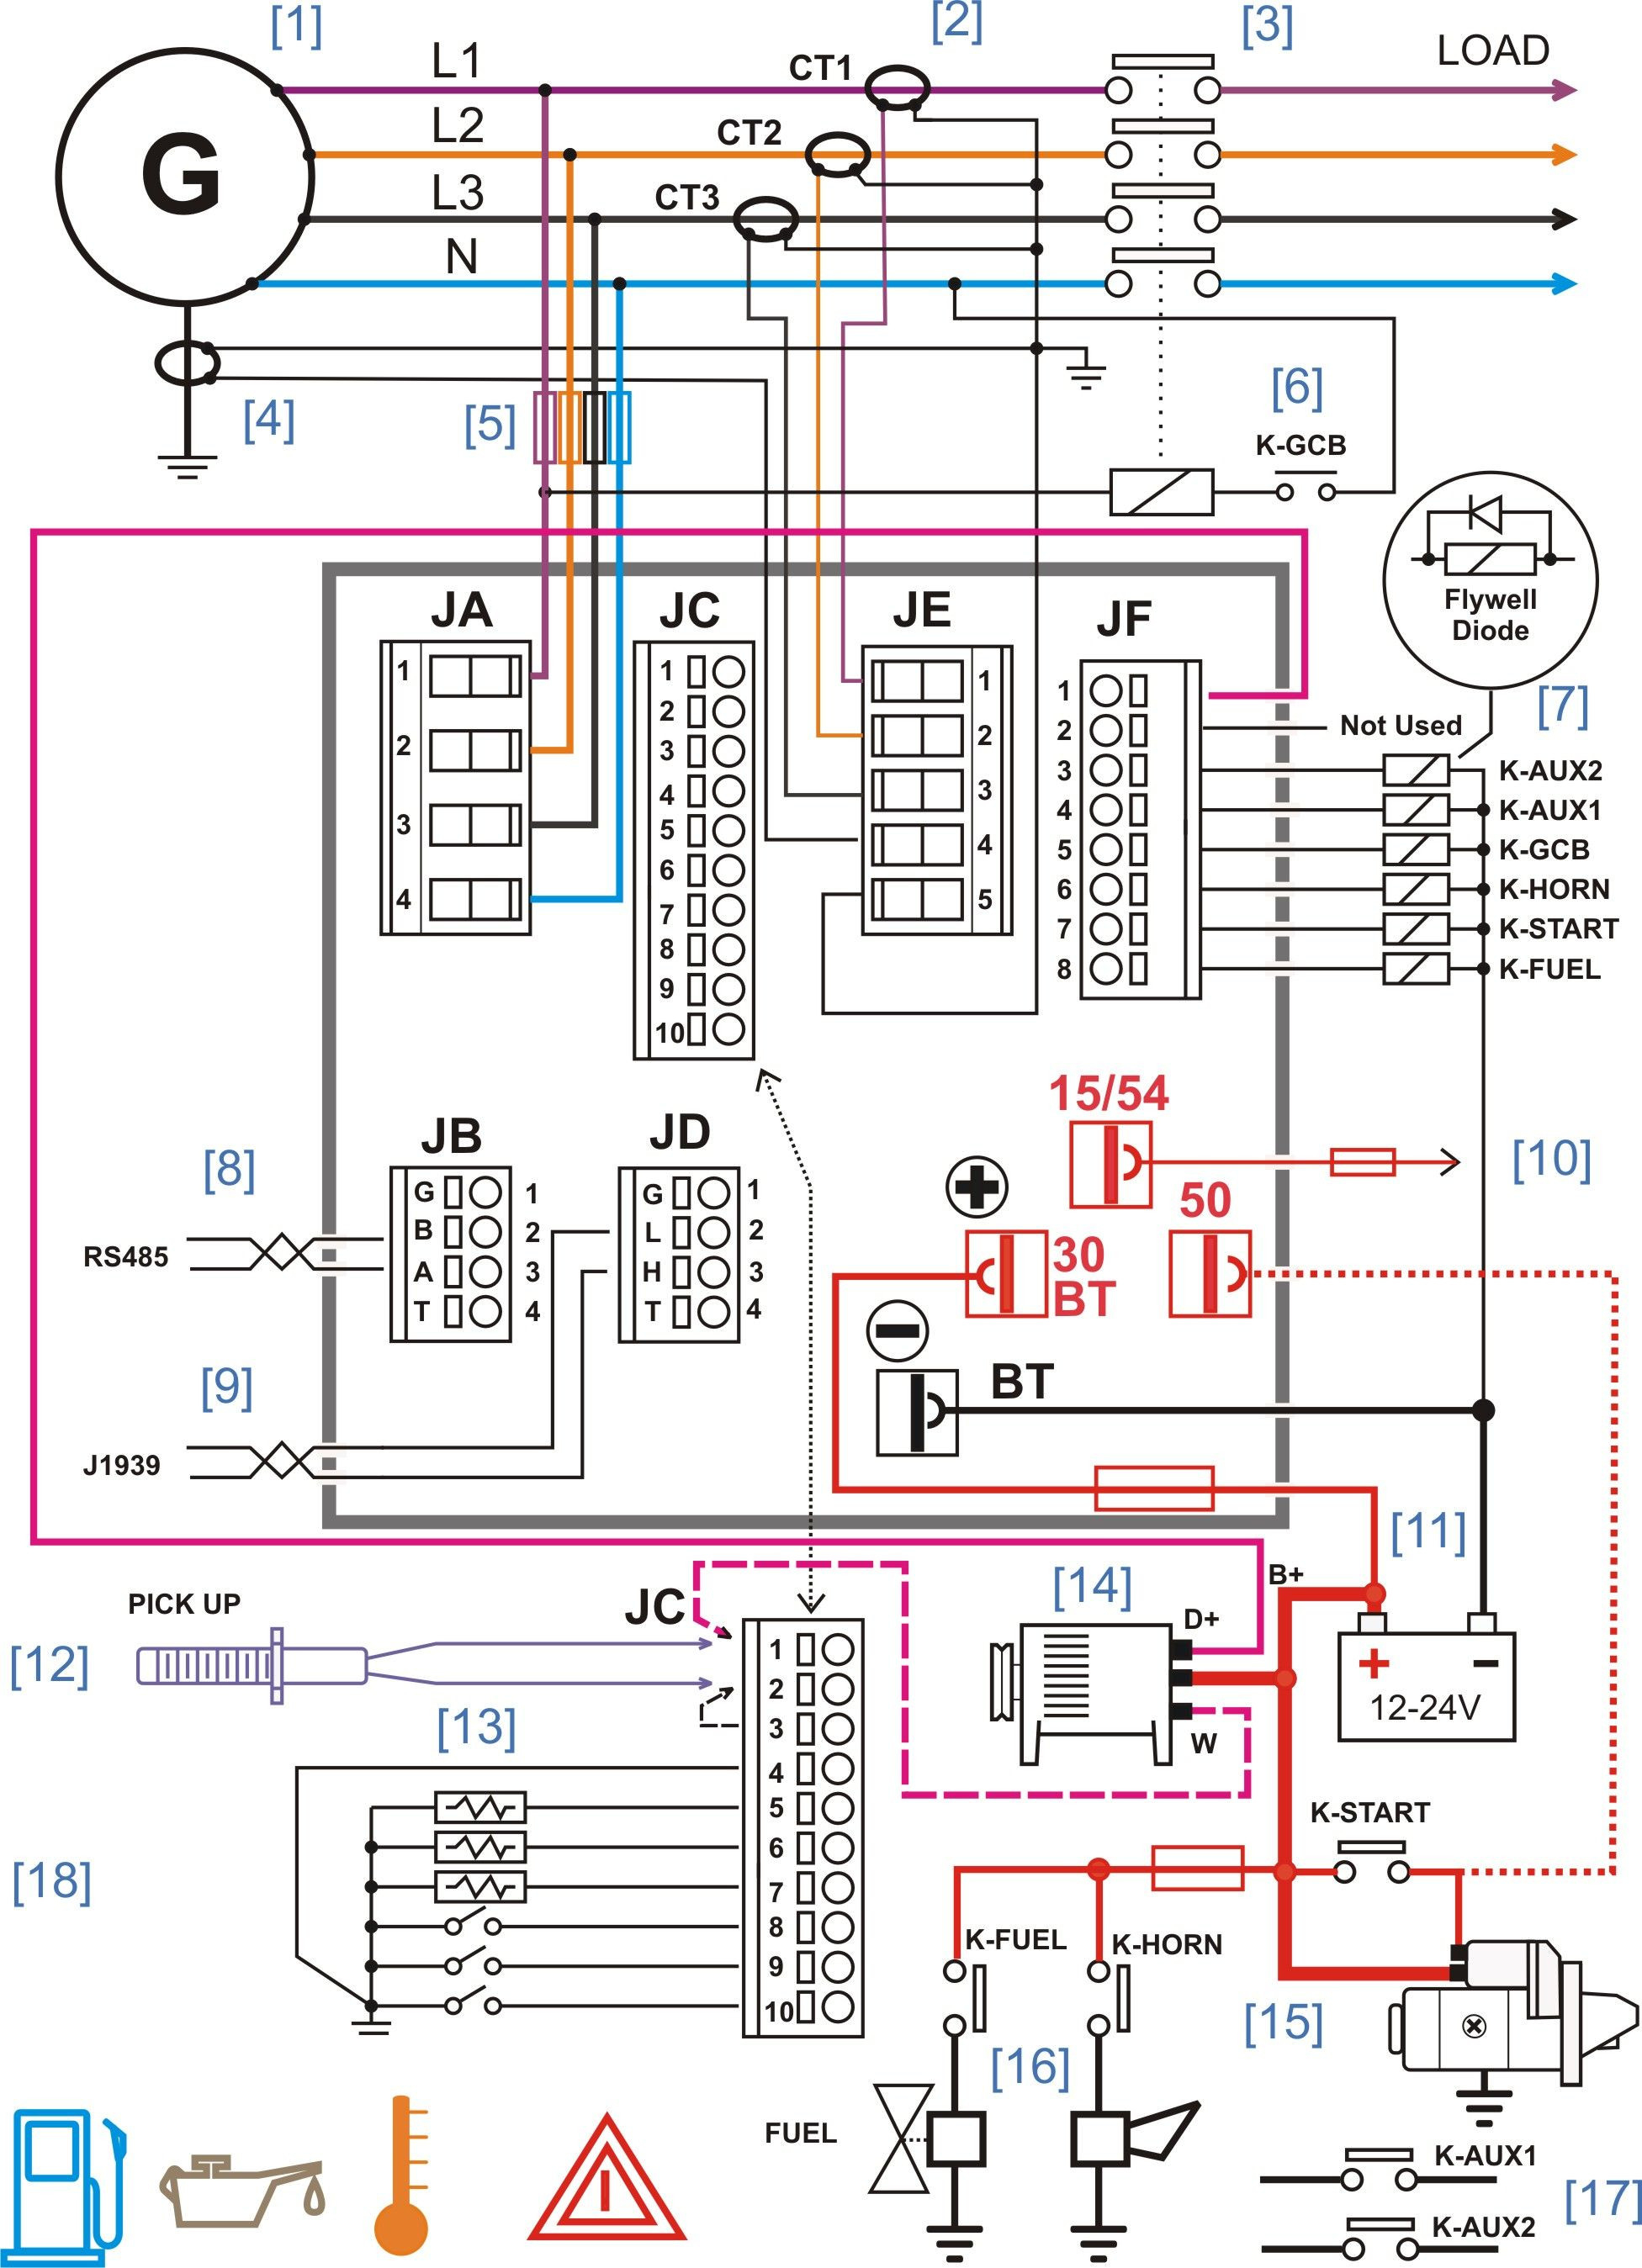 4 Wire Generator Wiring Diagram | Wiring Diagram - 4 Prong Generator Plug Wiring Diagram